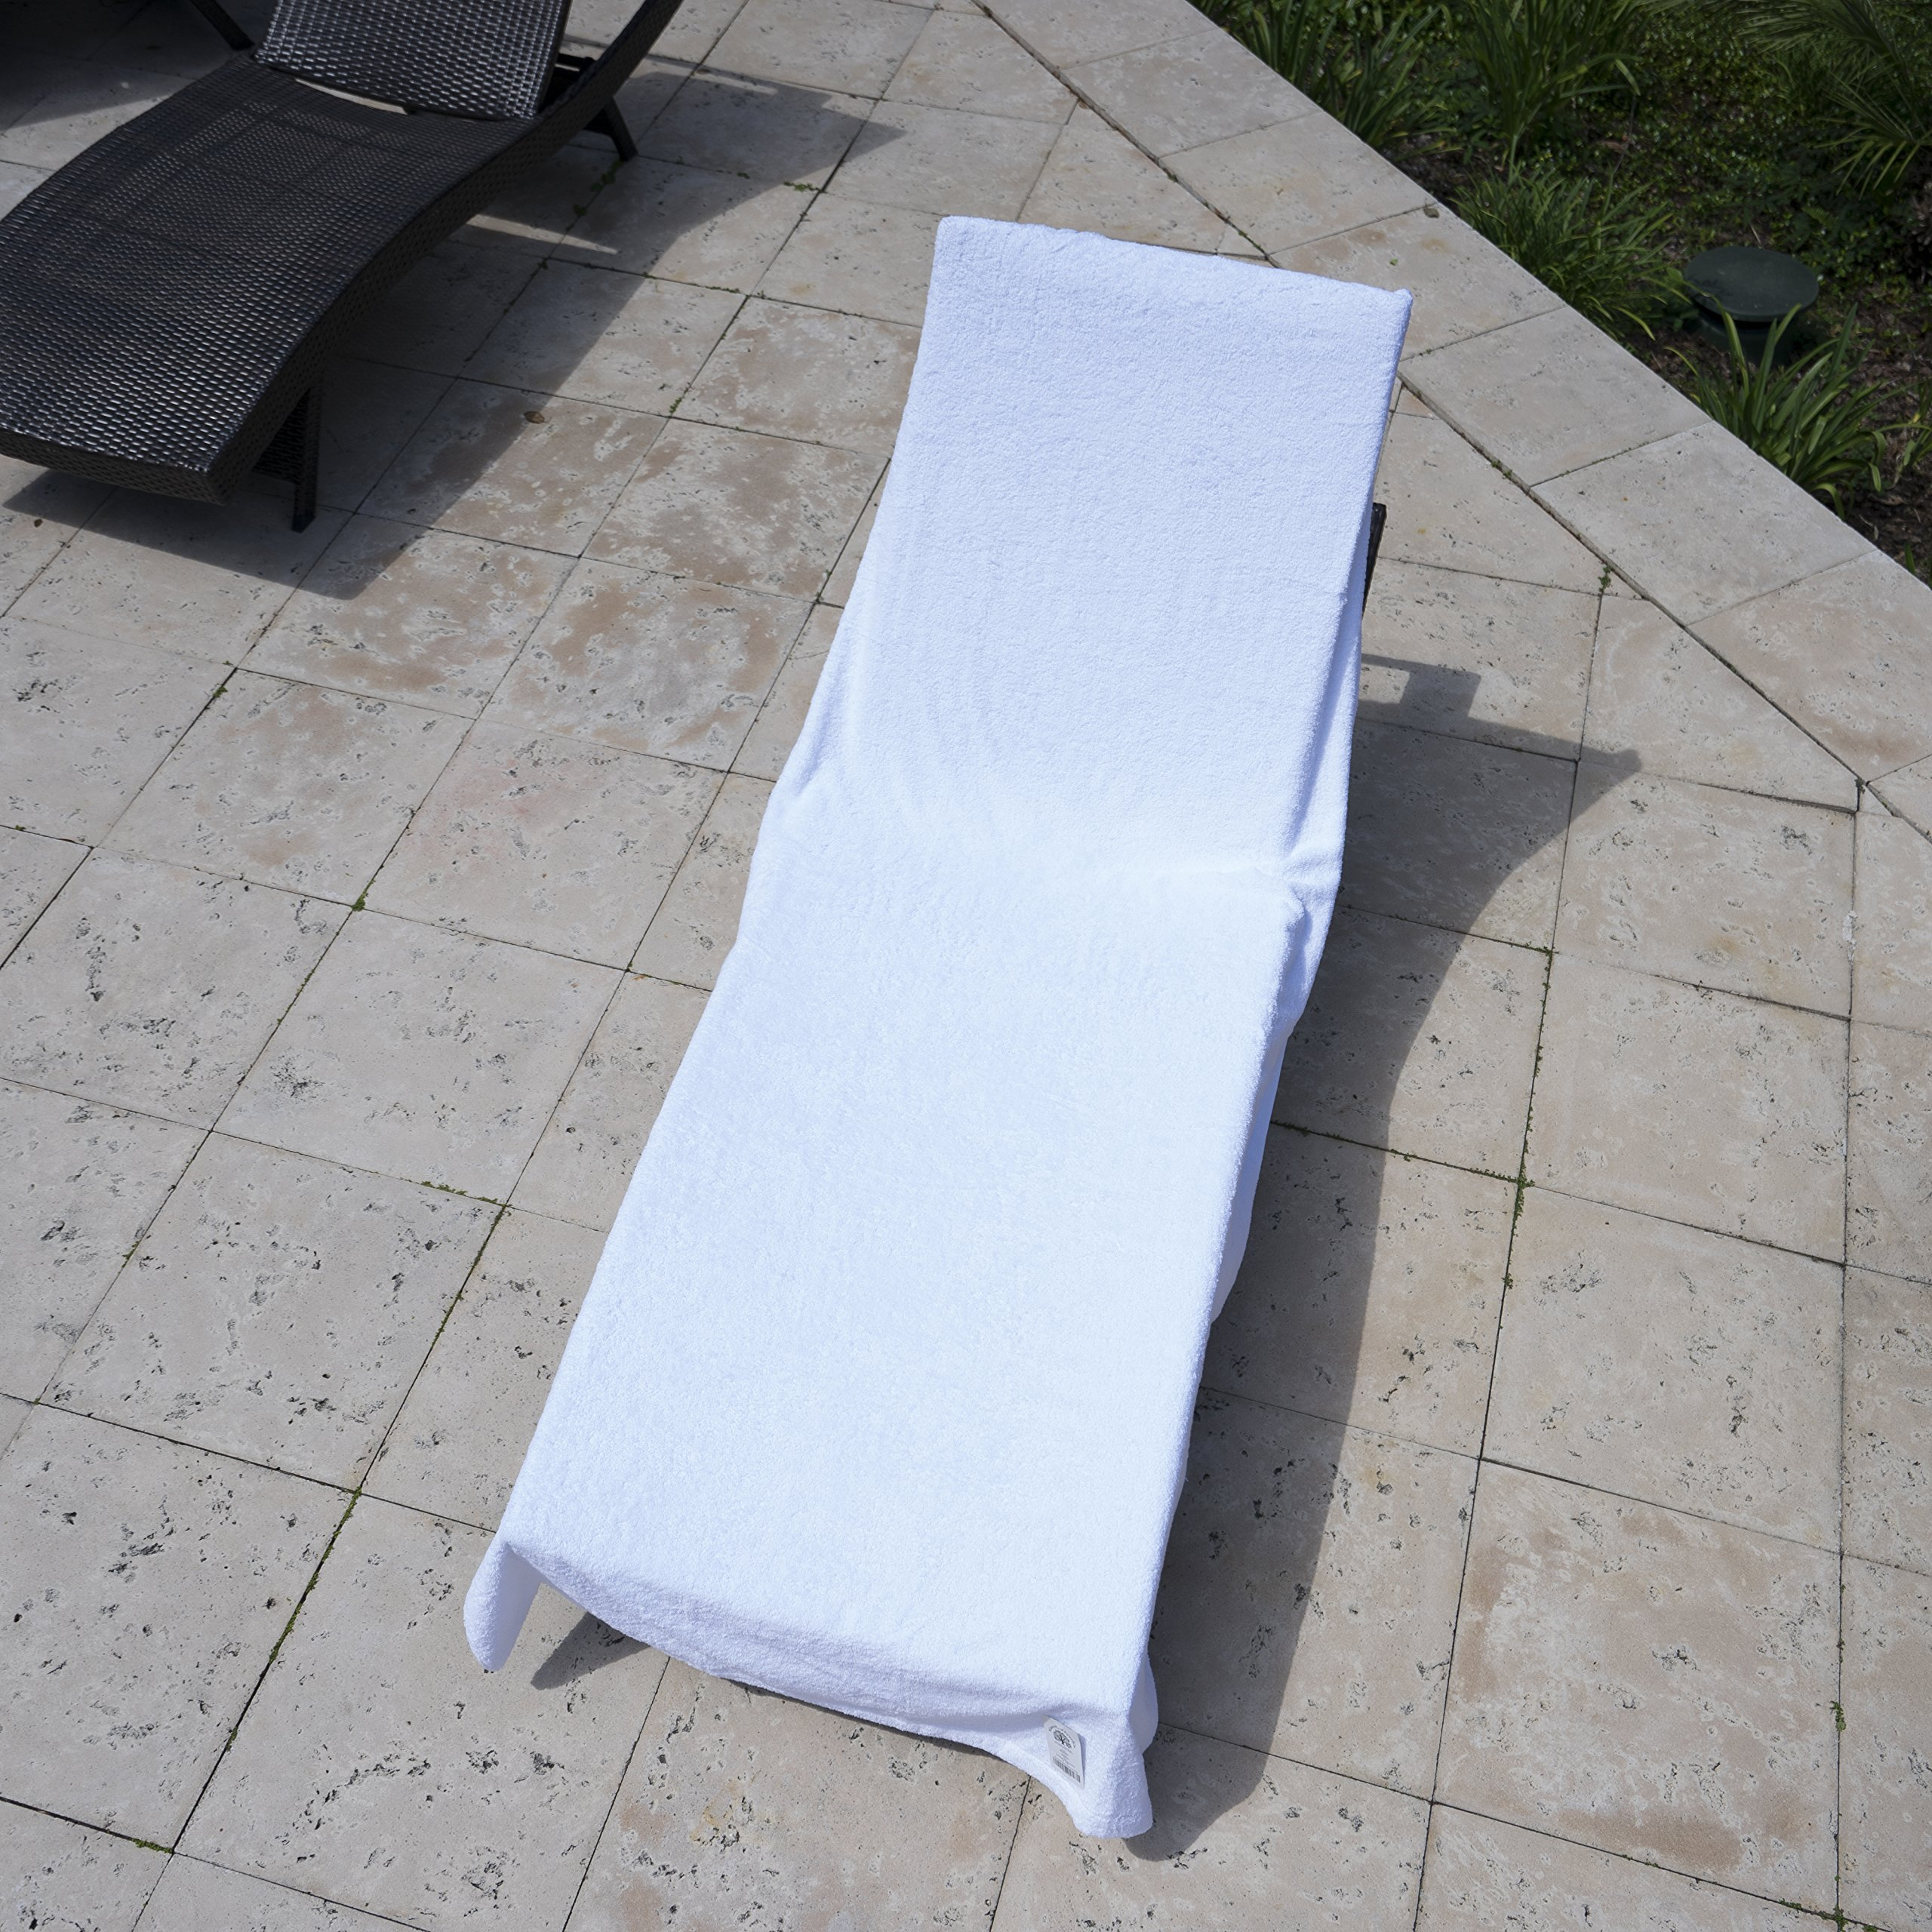 Winter Park Towel Co. Chaise Lounge Pool Chair Cover Towel (40'' x 90'') - Fitted Elastic Pocket Won't Slide (White)